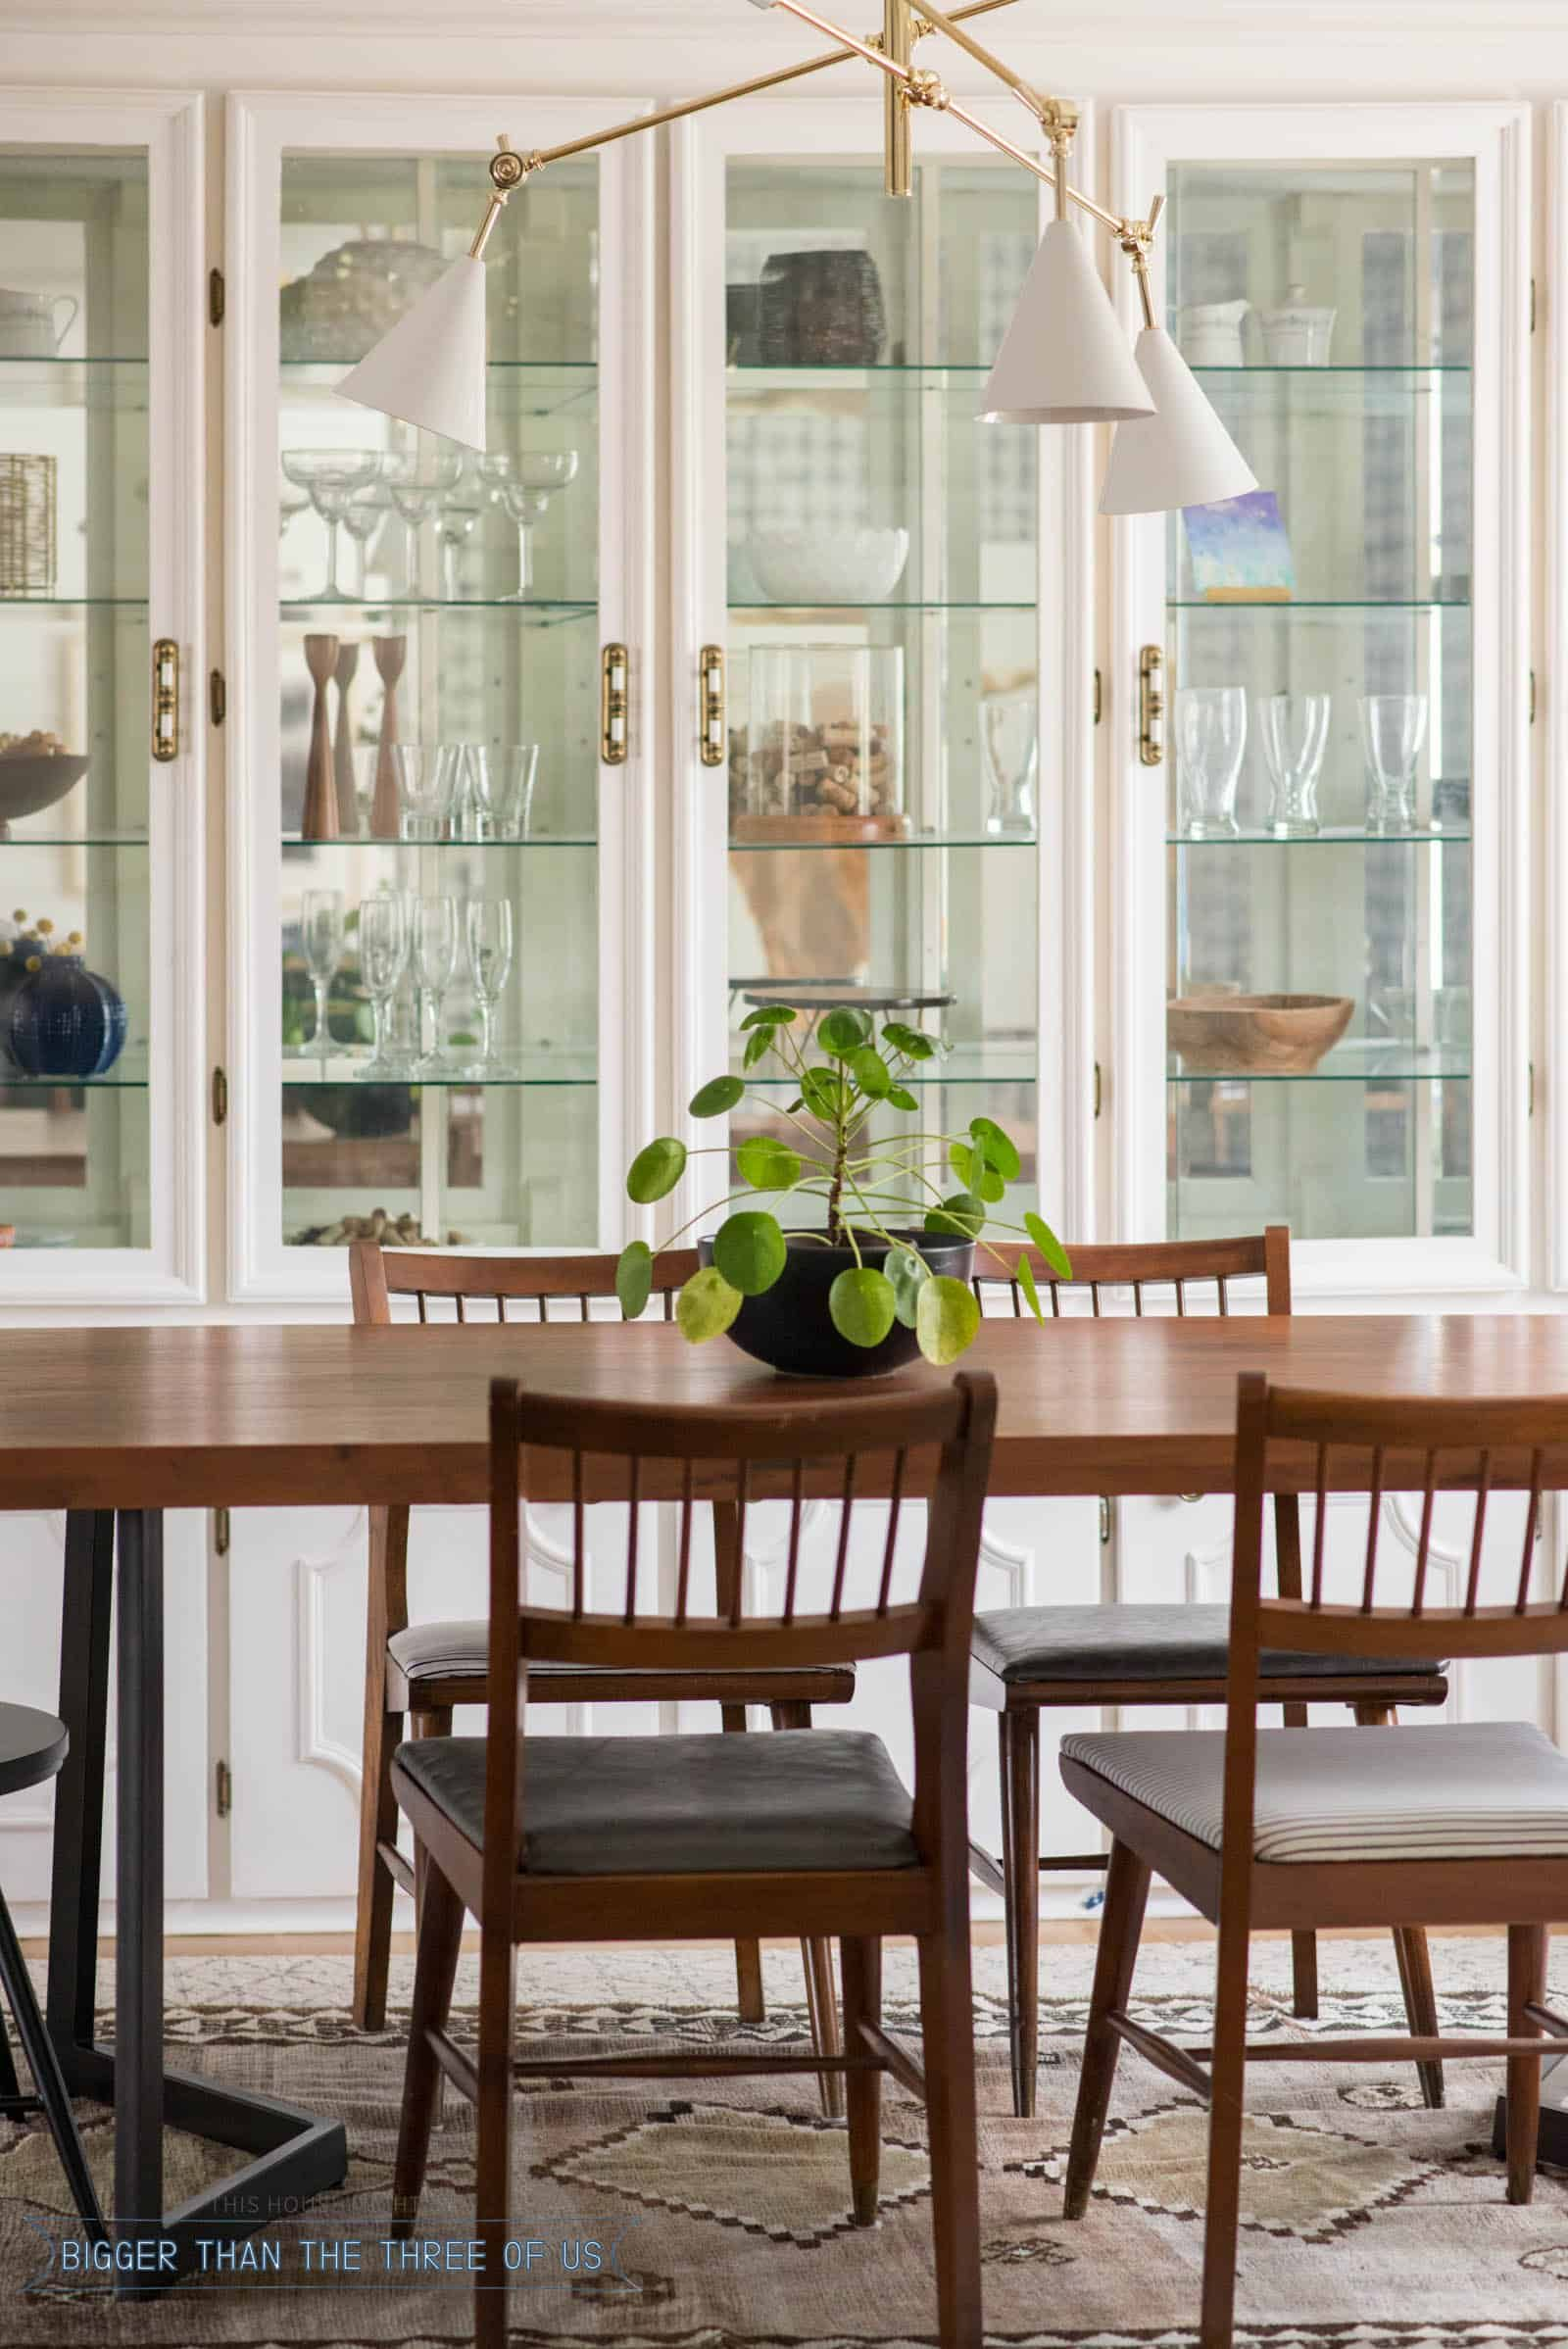 Leather Upholstered Midcentury Chairs With Black Spindle Chairs In Dining Room Formal Dining Room Furniture Dining Room Updates Scandi Dining Room